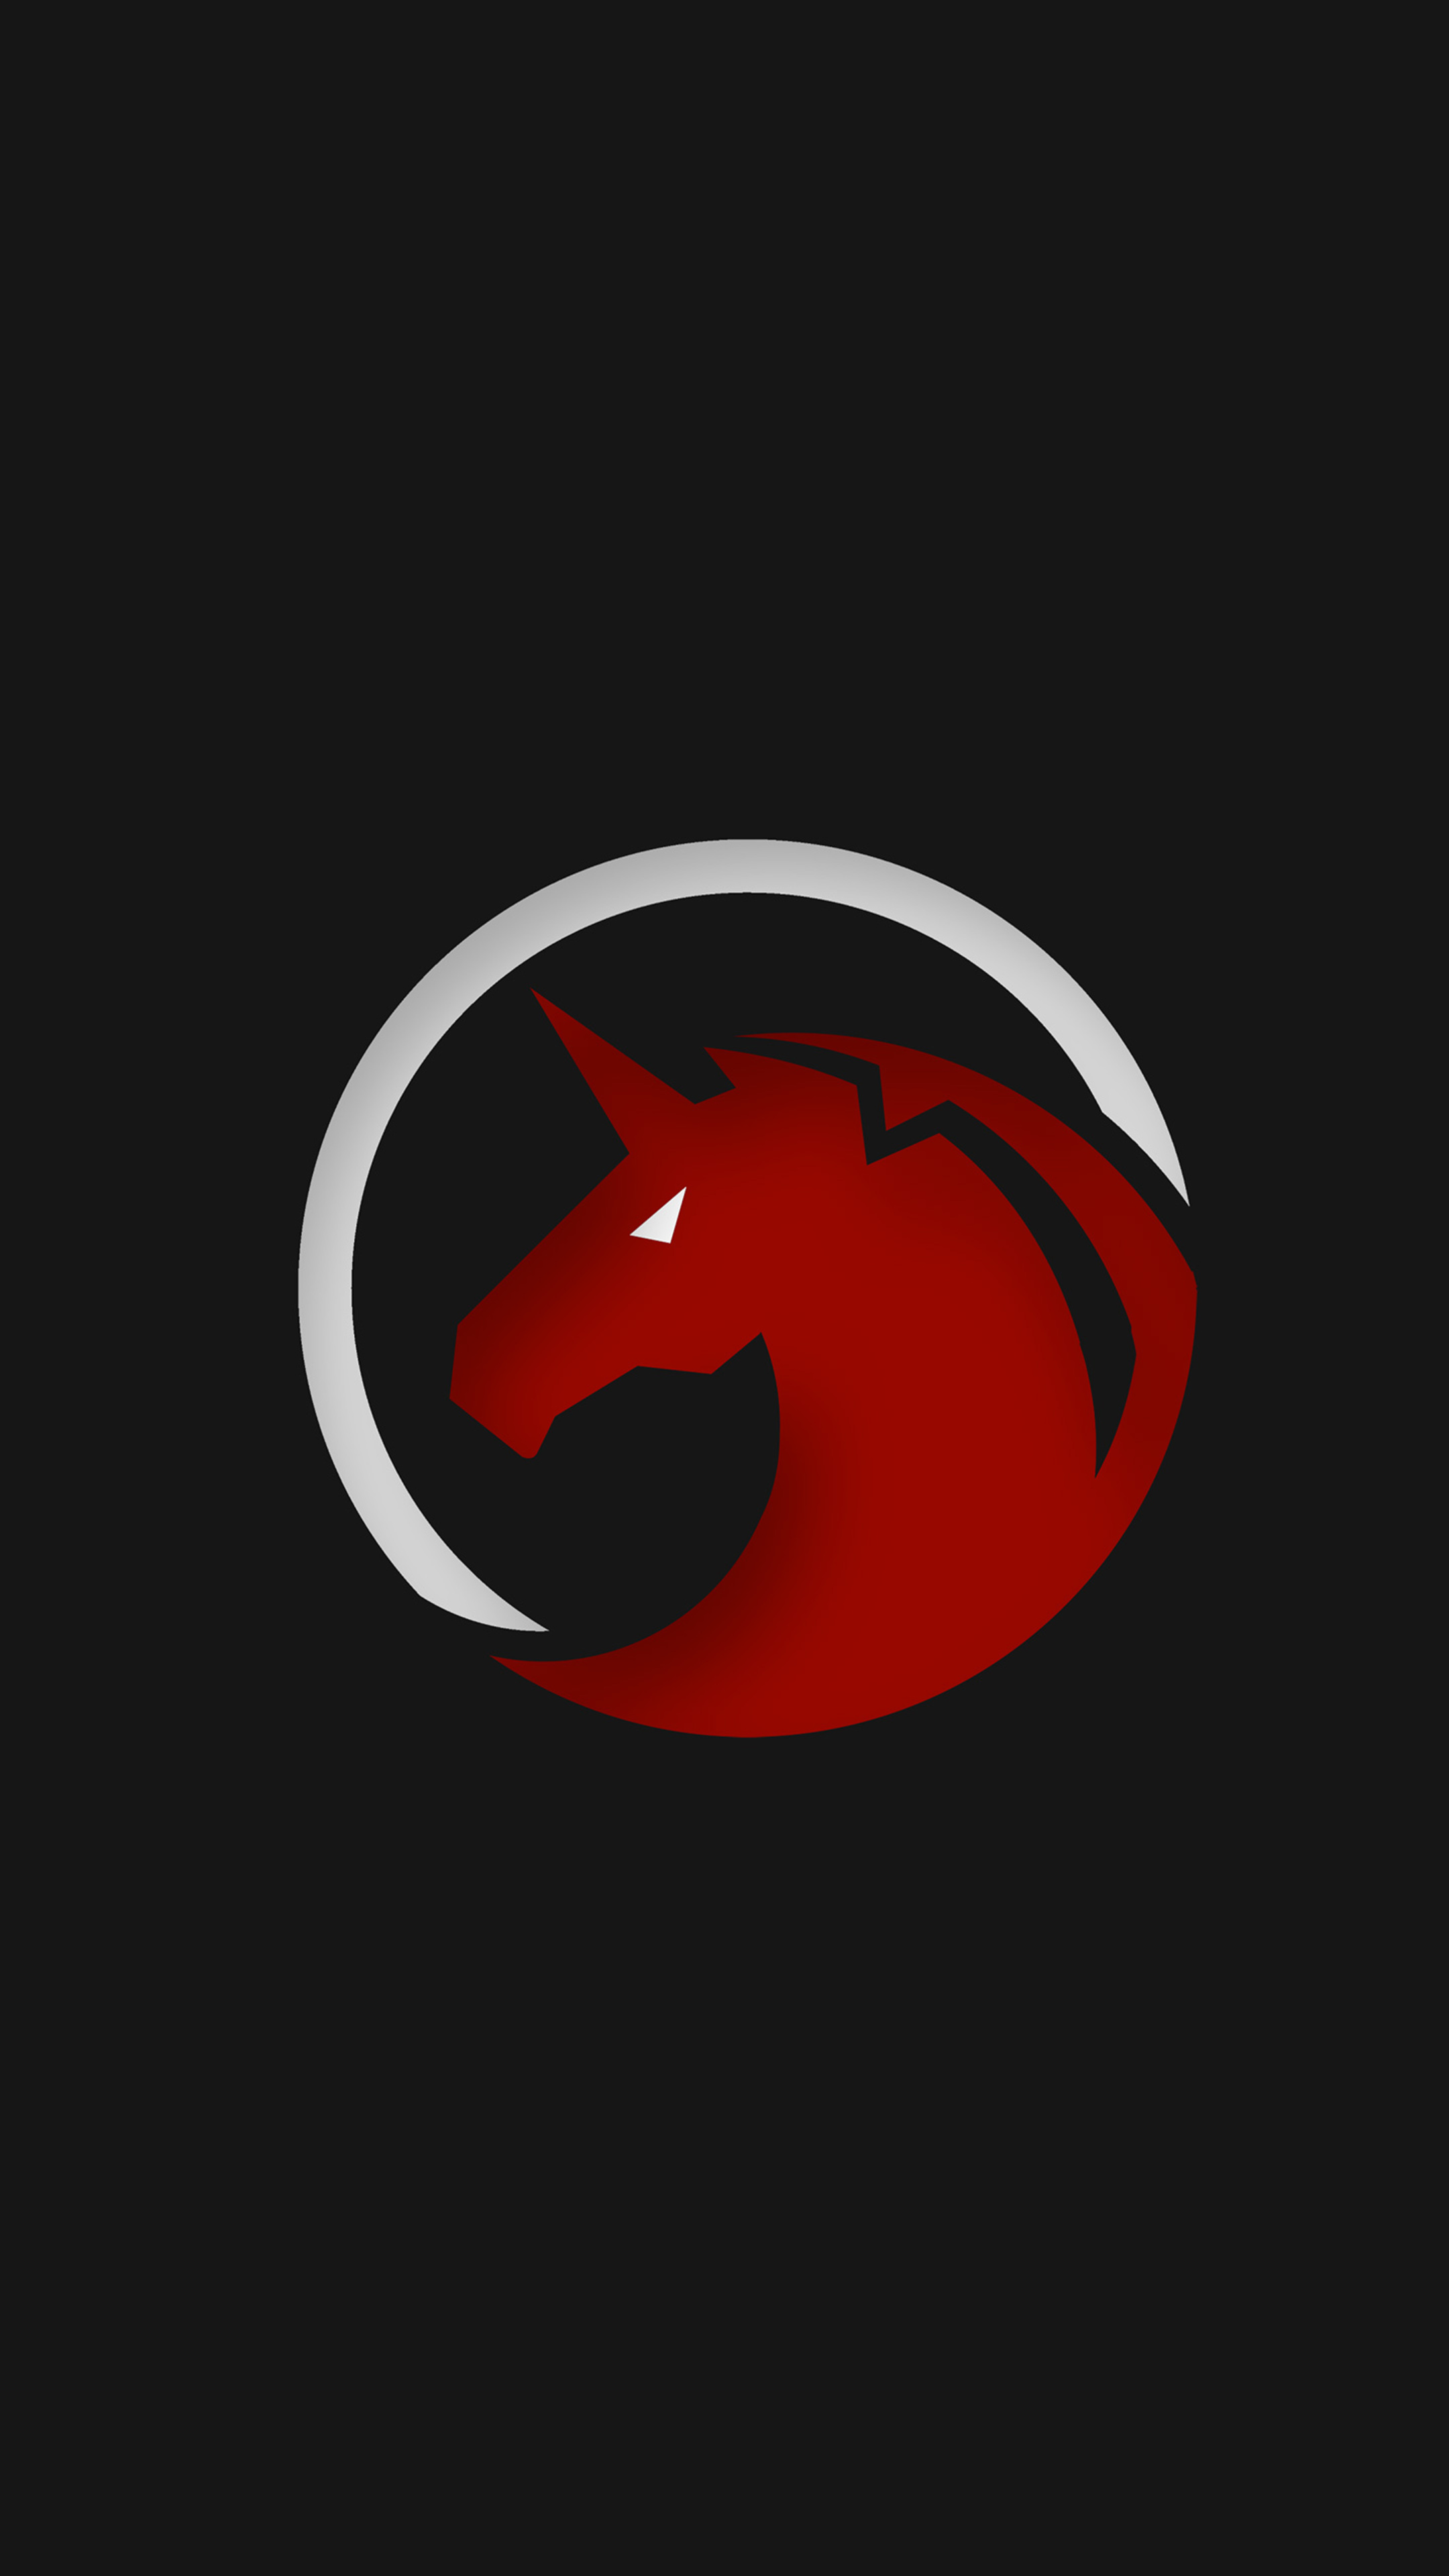 red-unicorn-logo-4k-ns.jpg